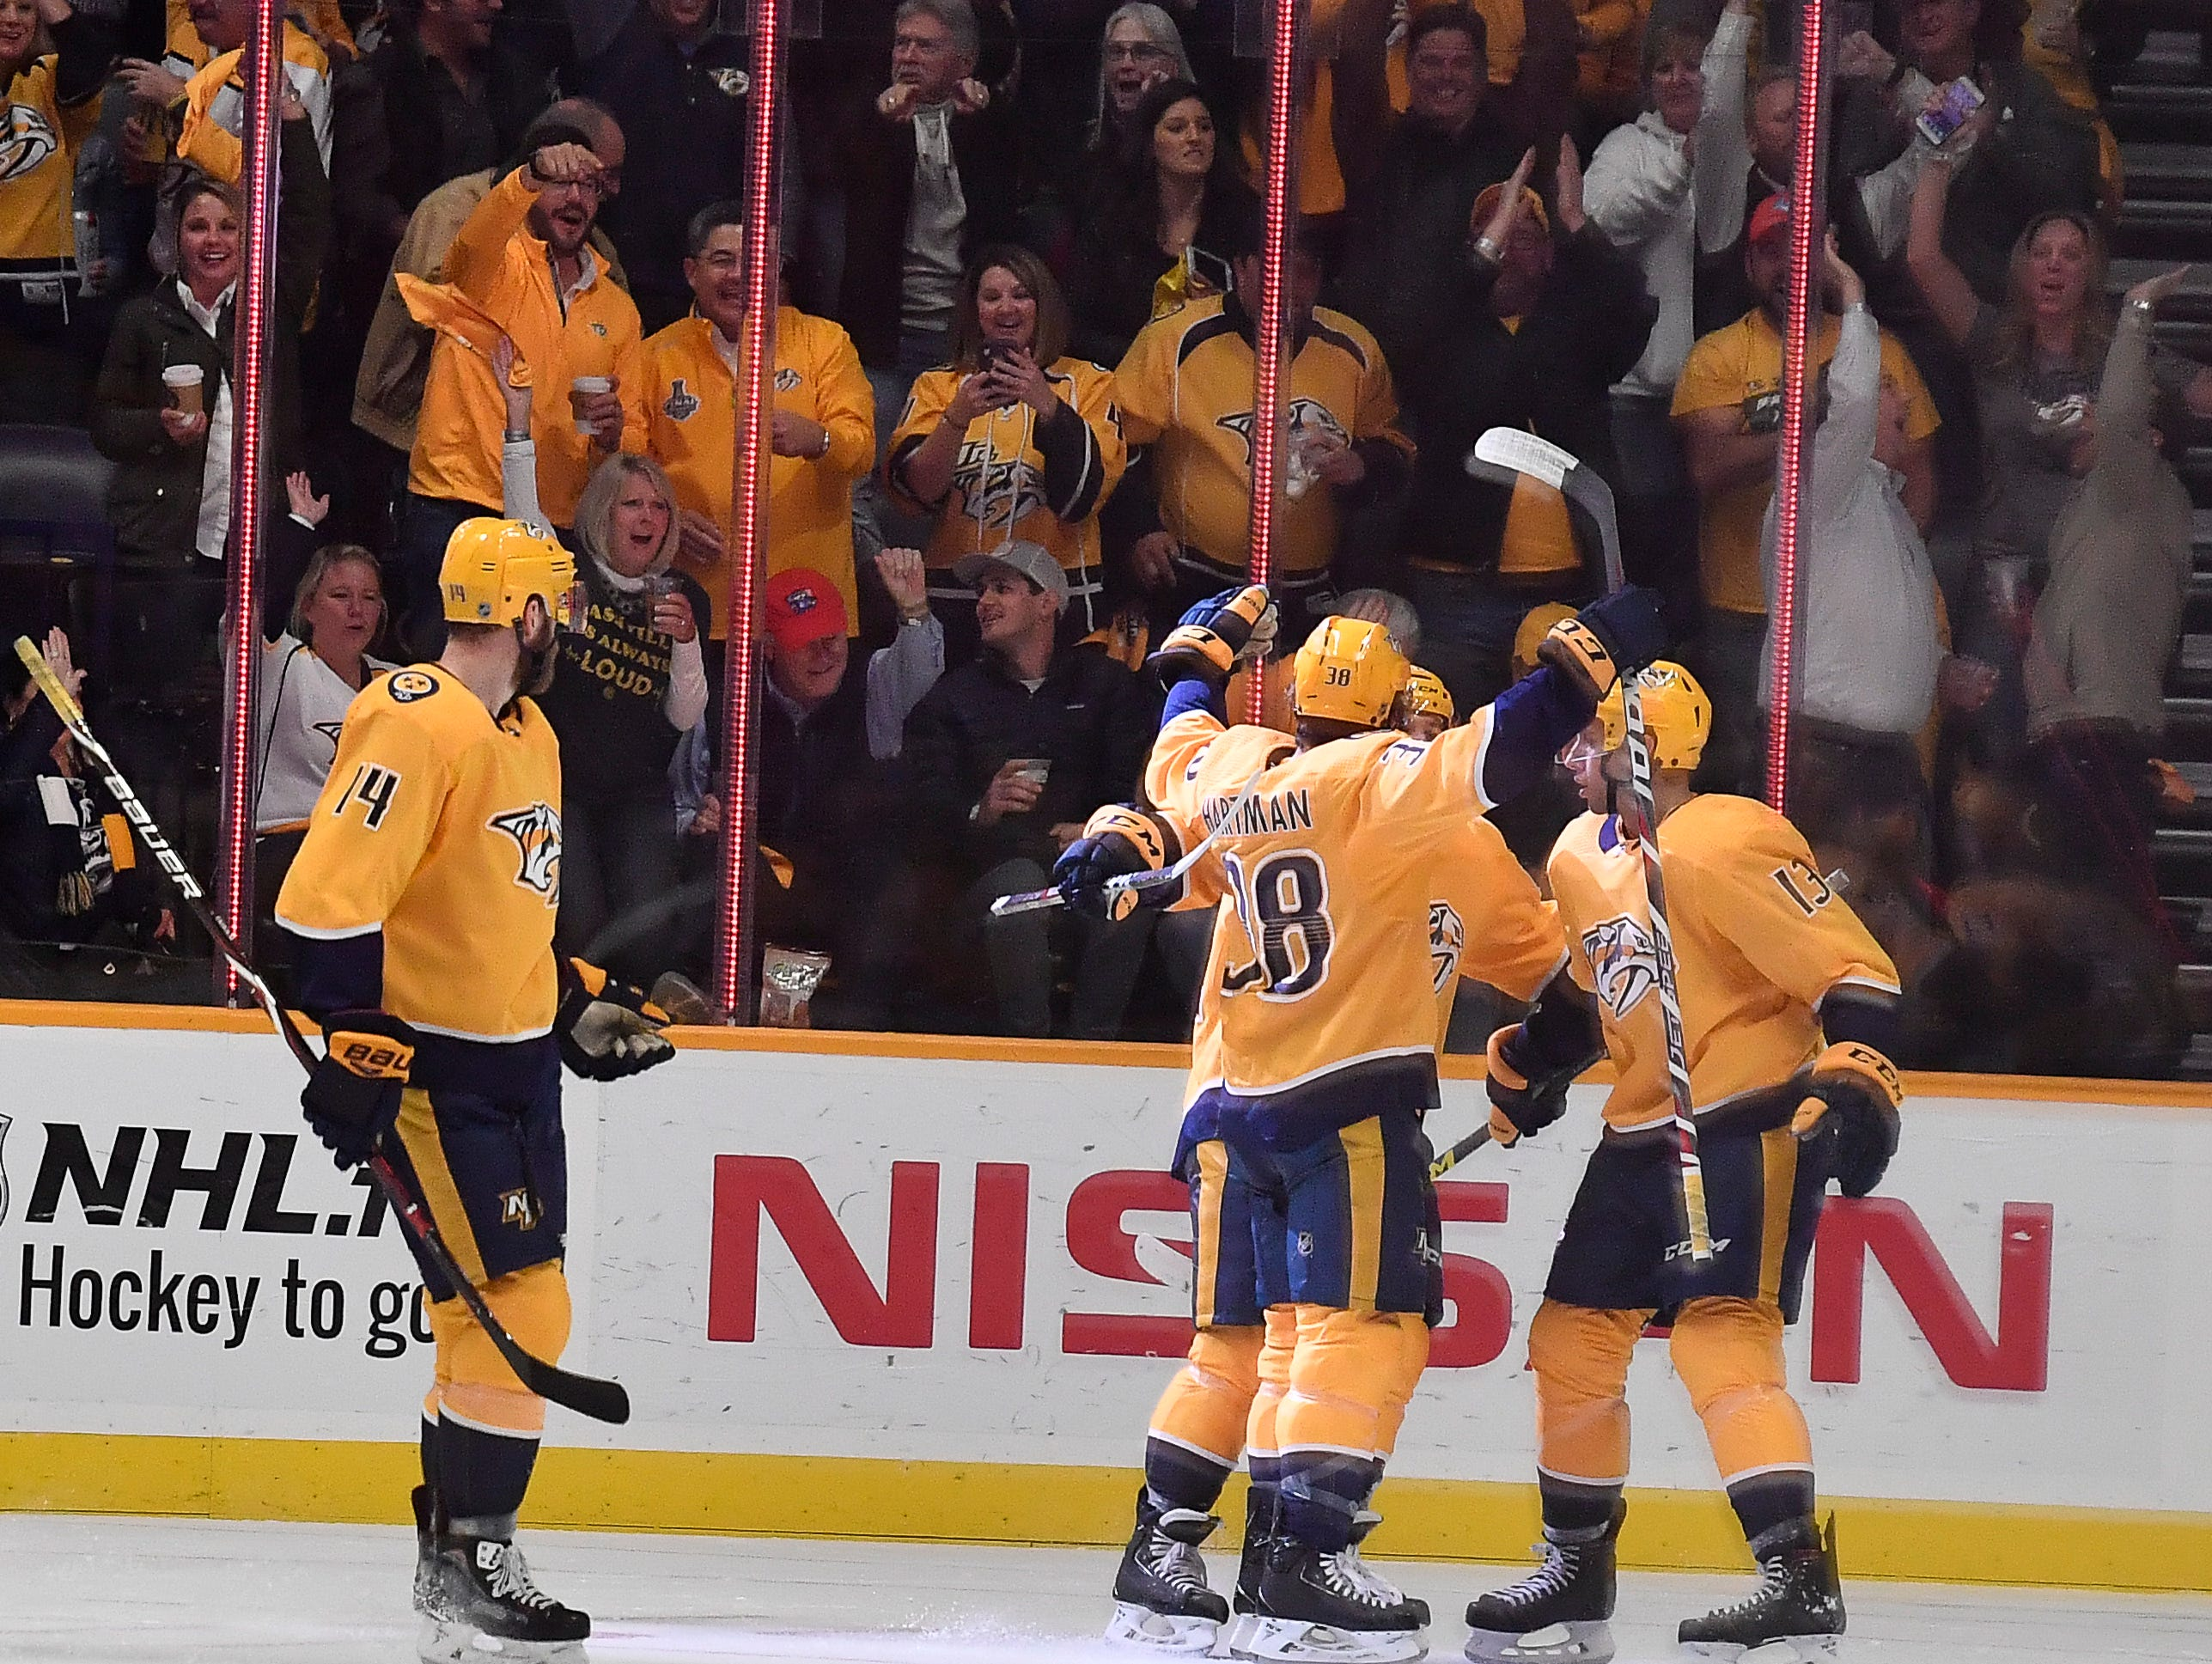 Predators right wing Ryan Hartman (38) is congratulated after his second goal against the Golden Knights during the second period at Bridgestone Arena Tuesday, Oct. 30, 2018, in Nashville, Tenn.